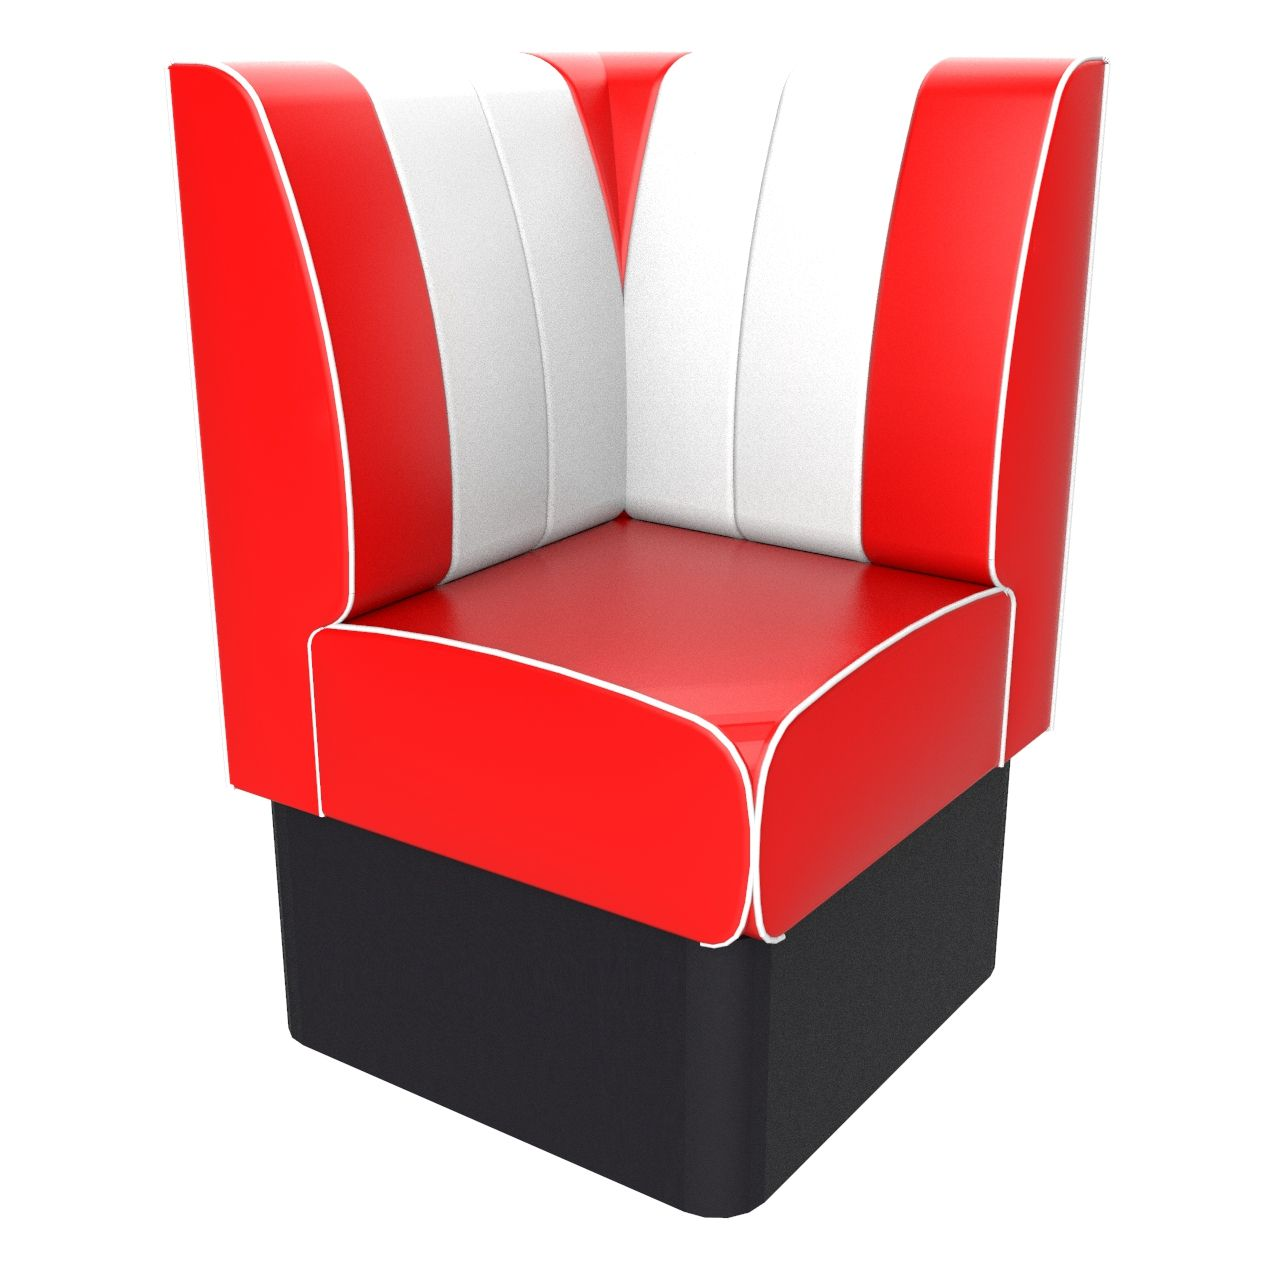 Kansas Retro Corner Booth Seat - 700mm x 700mm